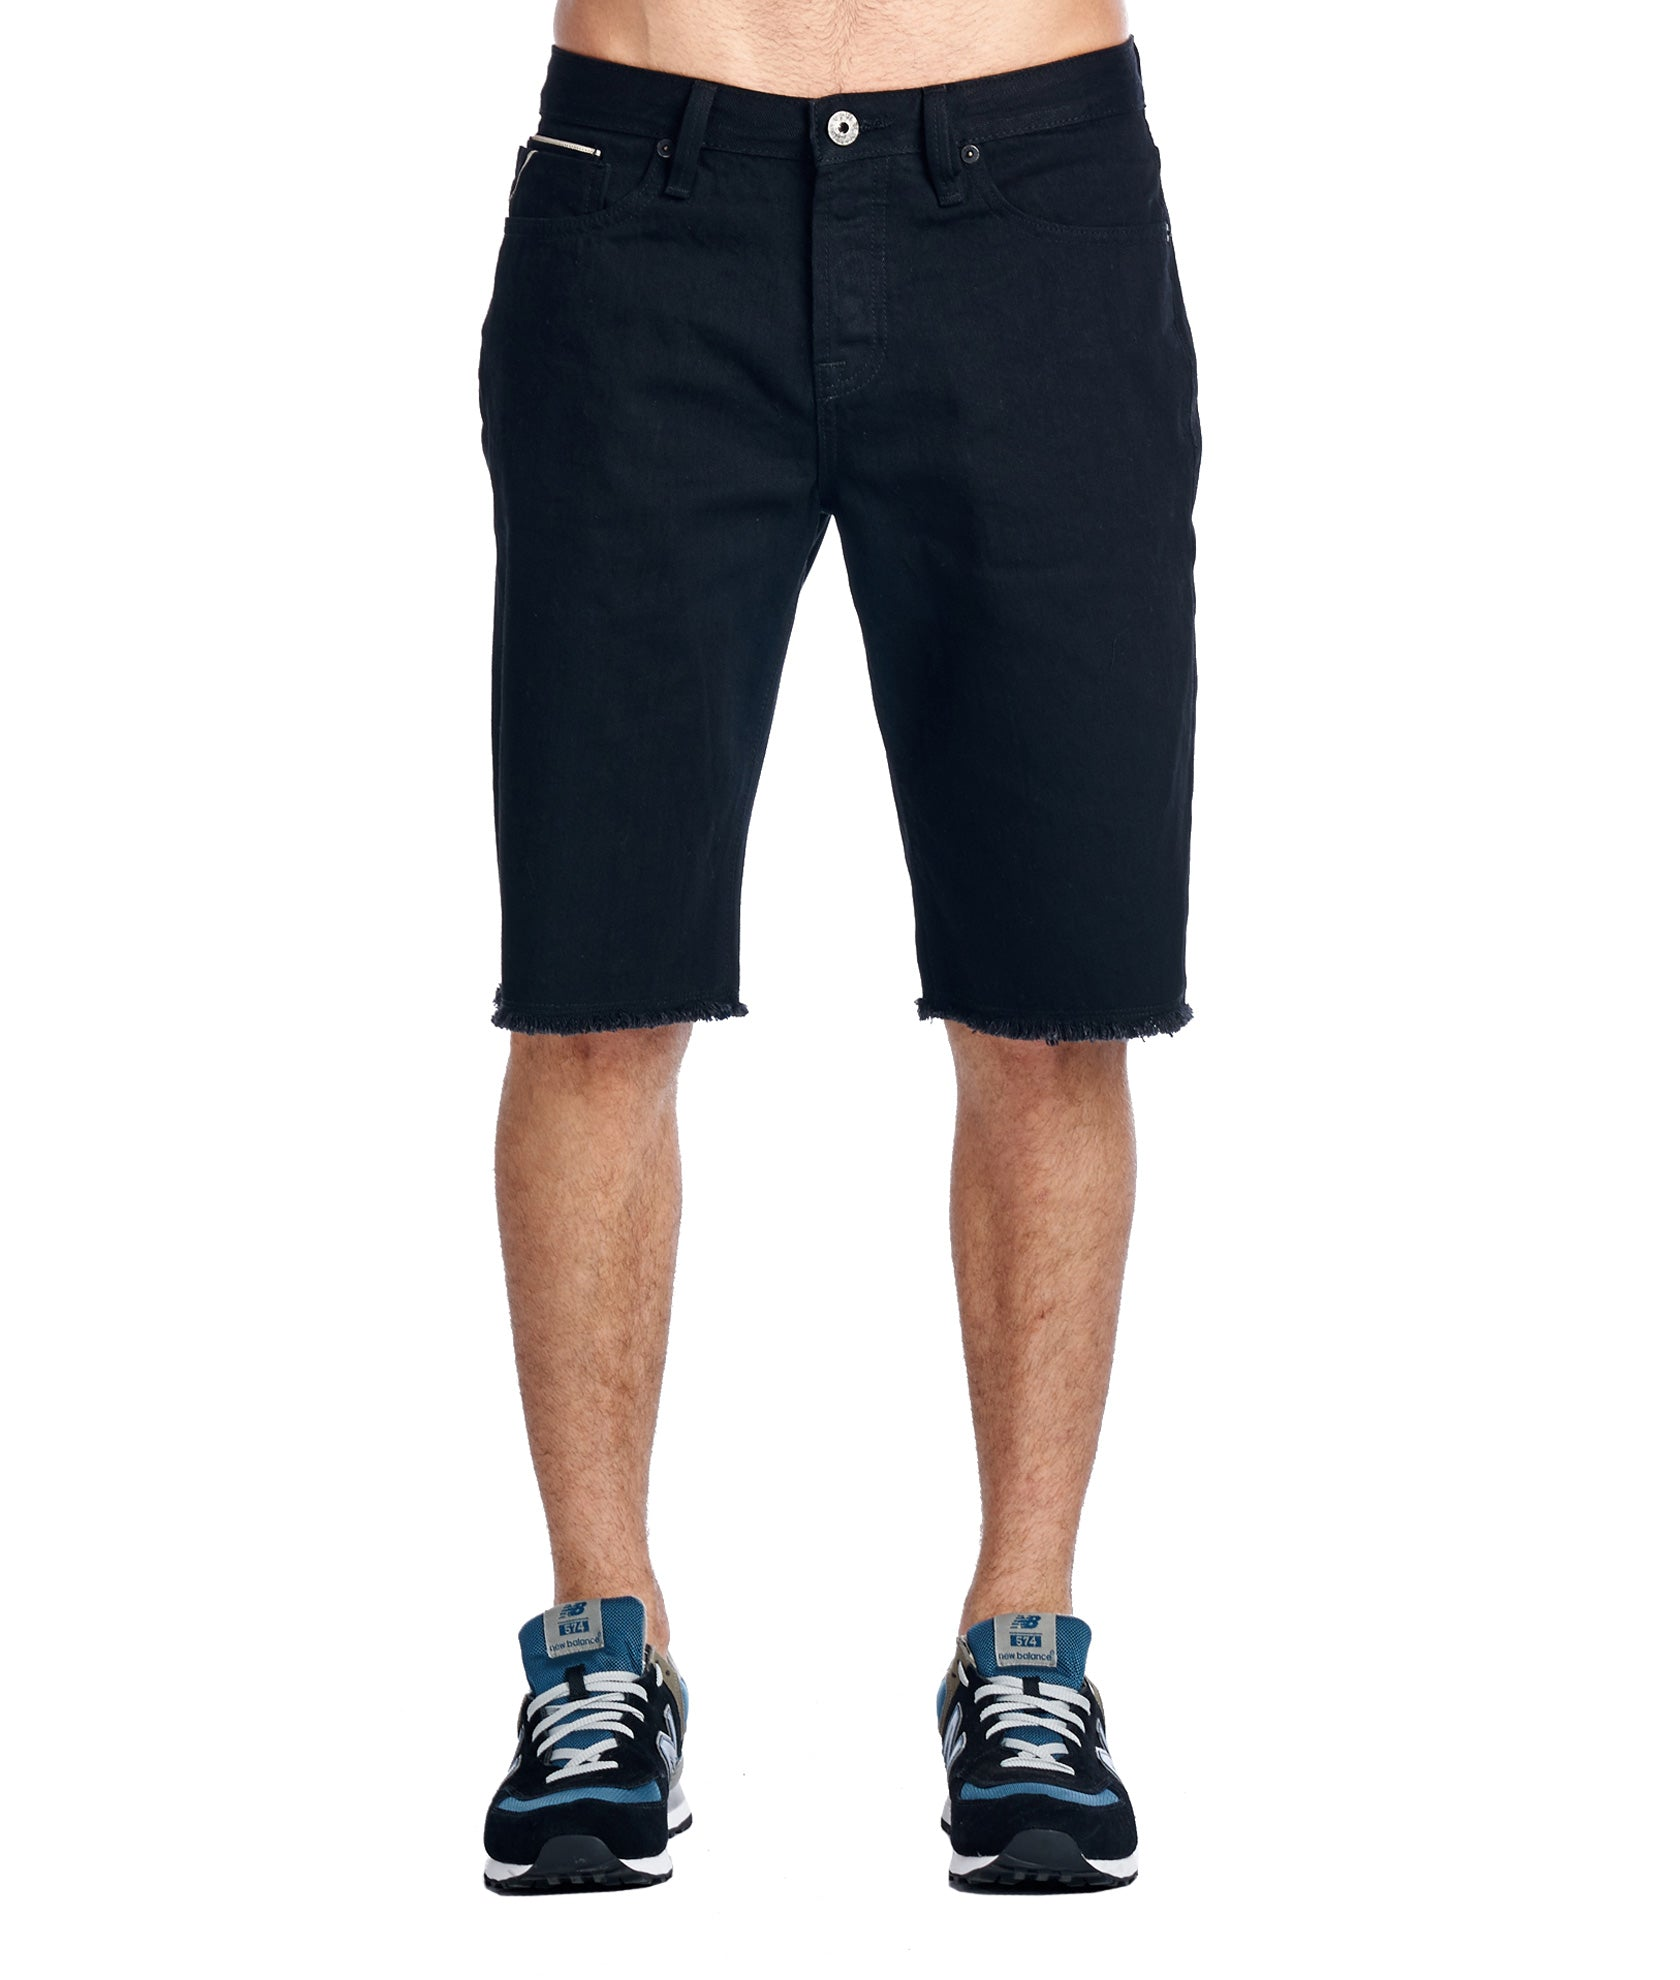 Cult of IndividualityMen's Rebel Denim Shorts in Black33